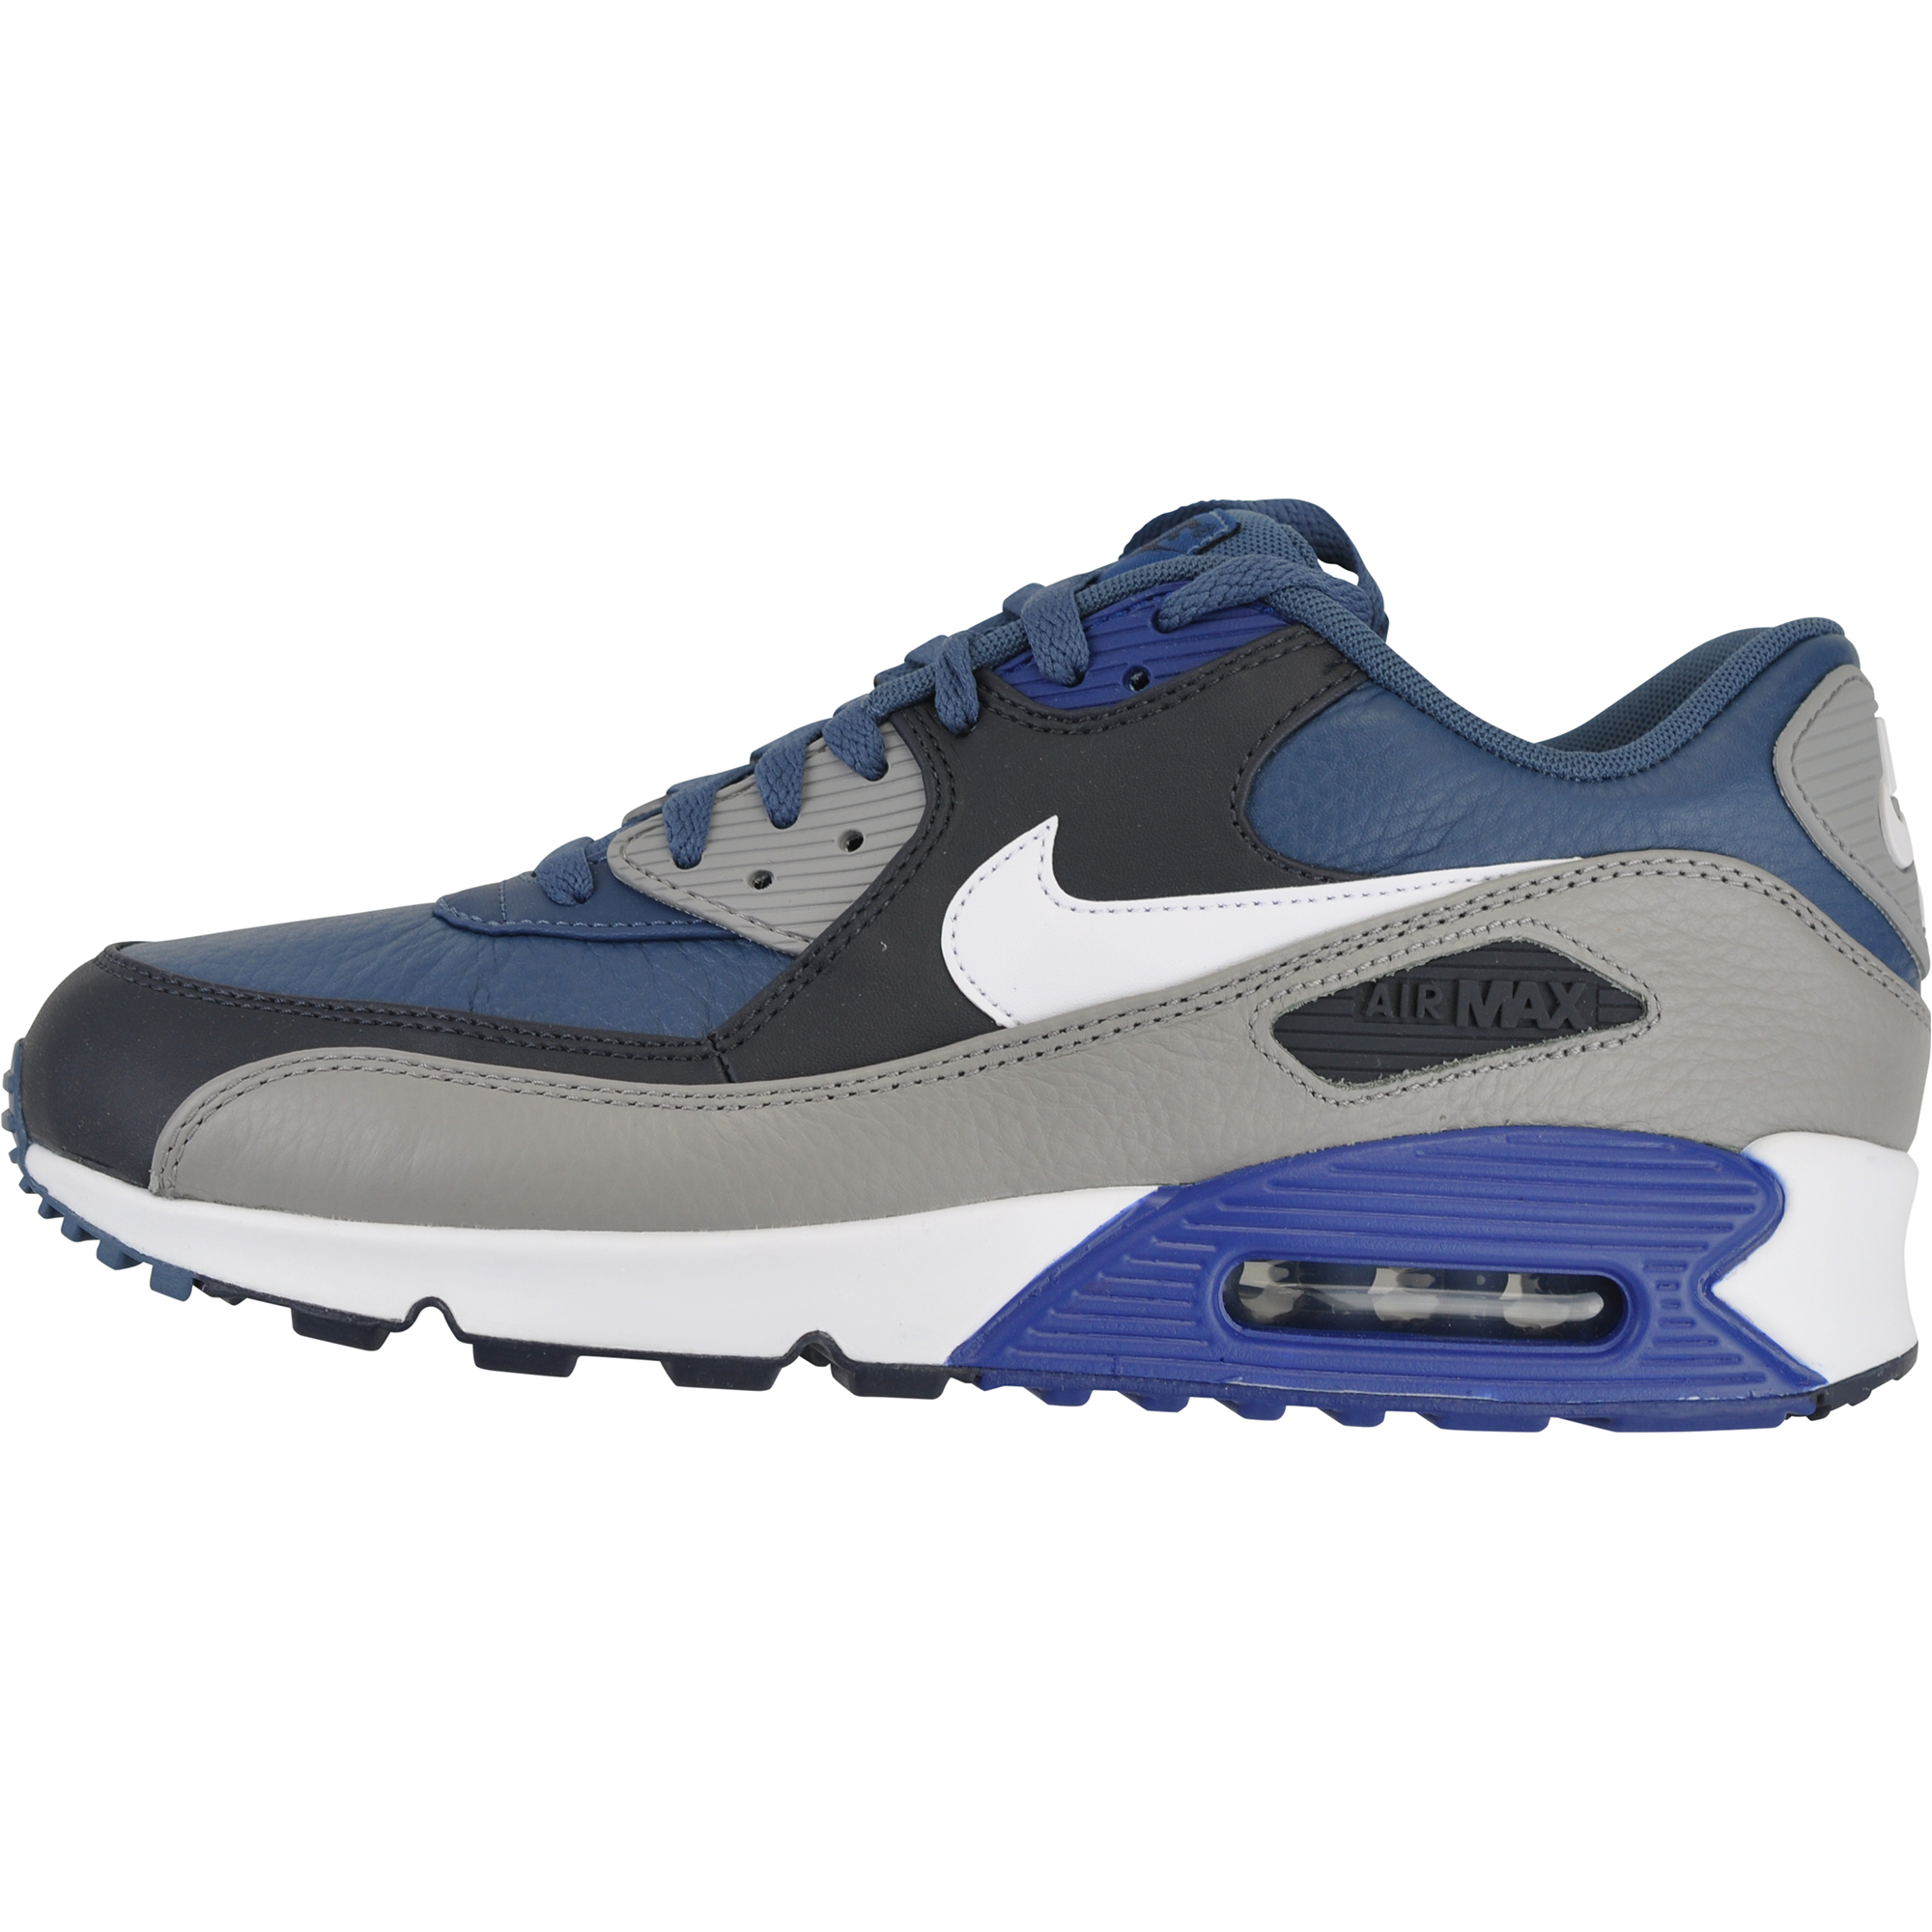 nike air max 90 premium 1 essential light lunar90 ltr 2014. Black Bedroom Furniture Sets. Home Design Ideas